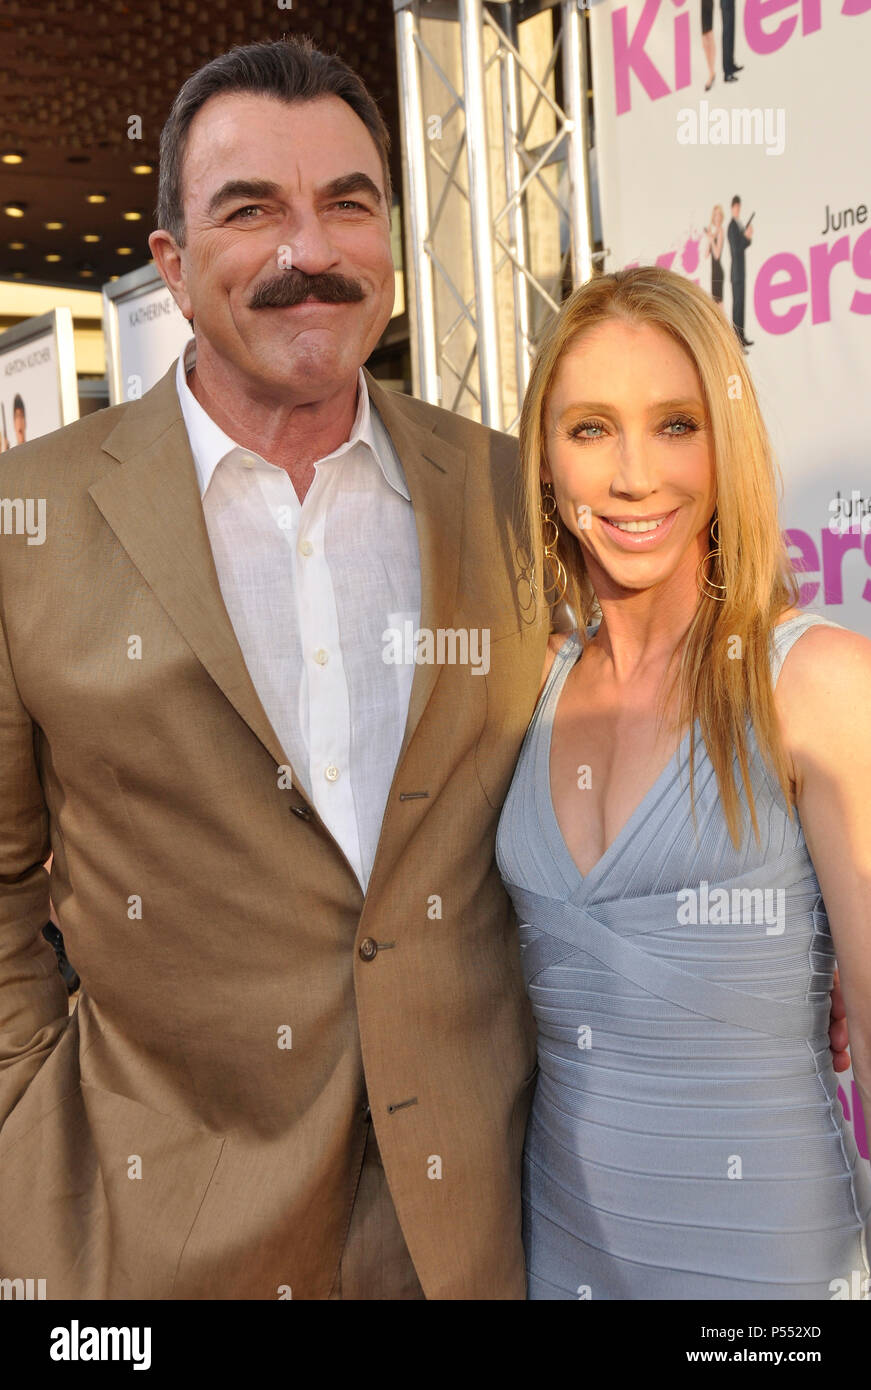 Tent Gamma Tom Selleck Stock Photos & Tom Selleck Stock Images - Alamy